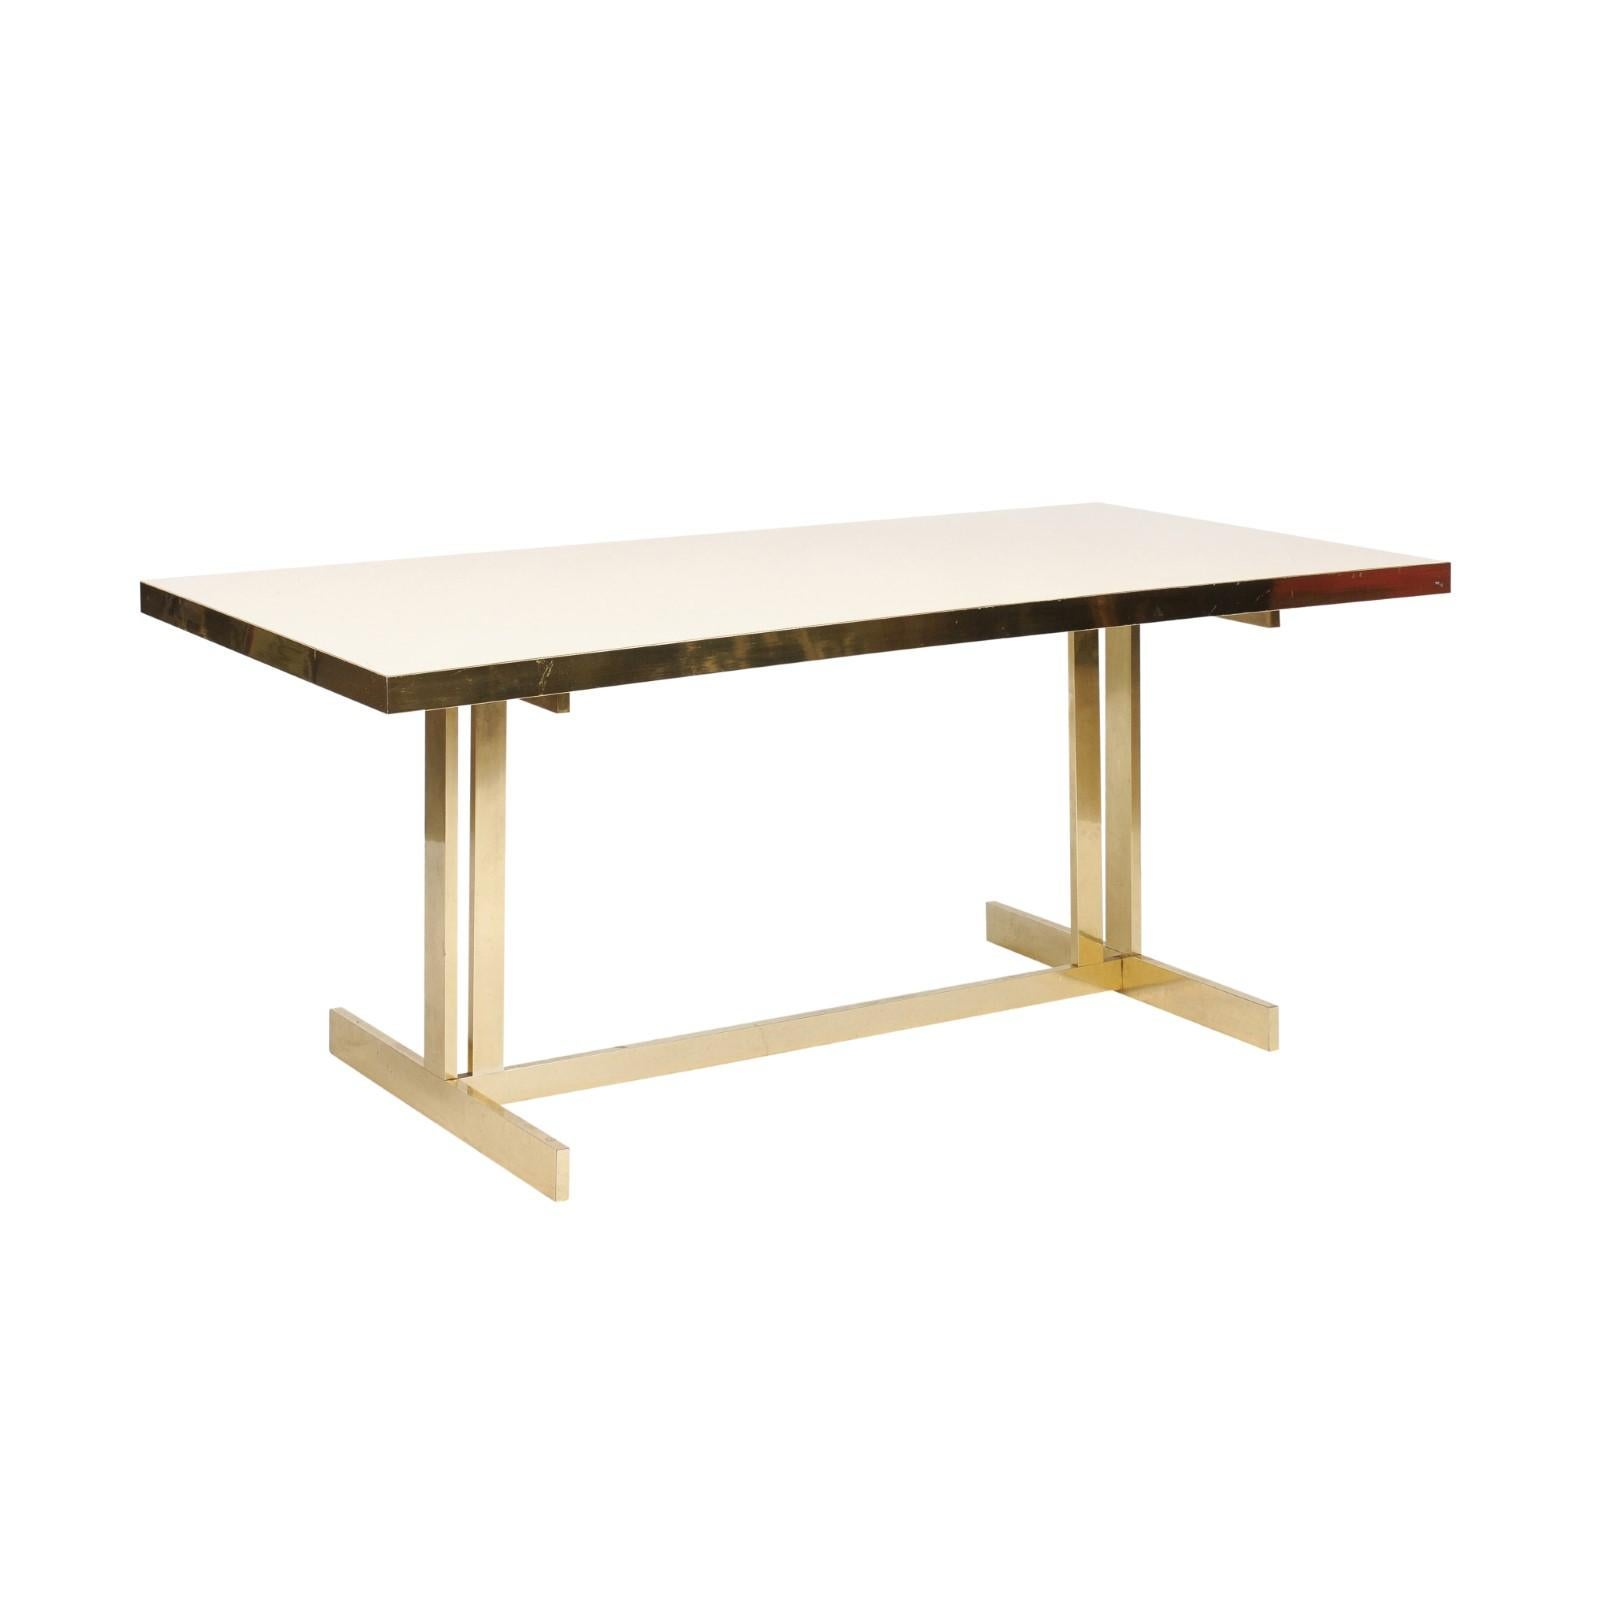 Italian Vintage Mid Century Modern Formica Dining Table With Brass Trestle  Base